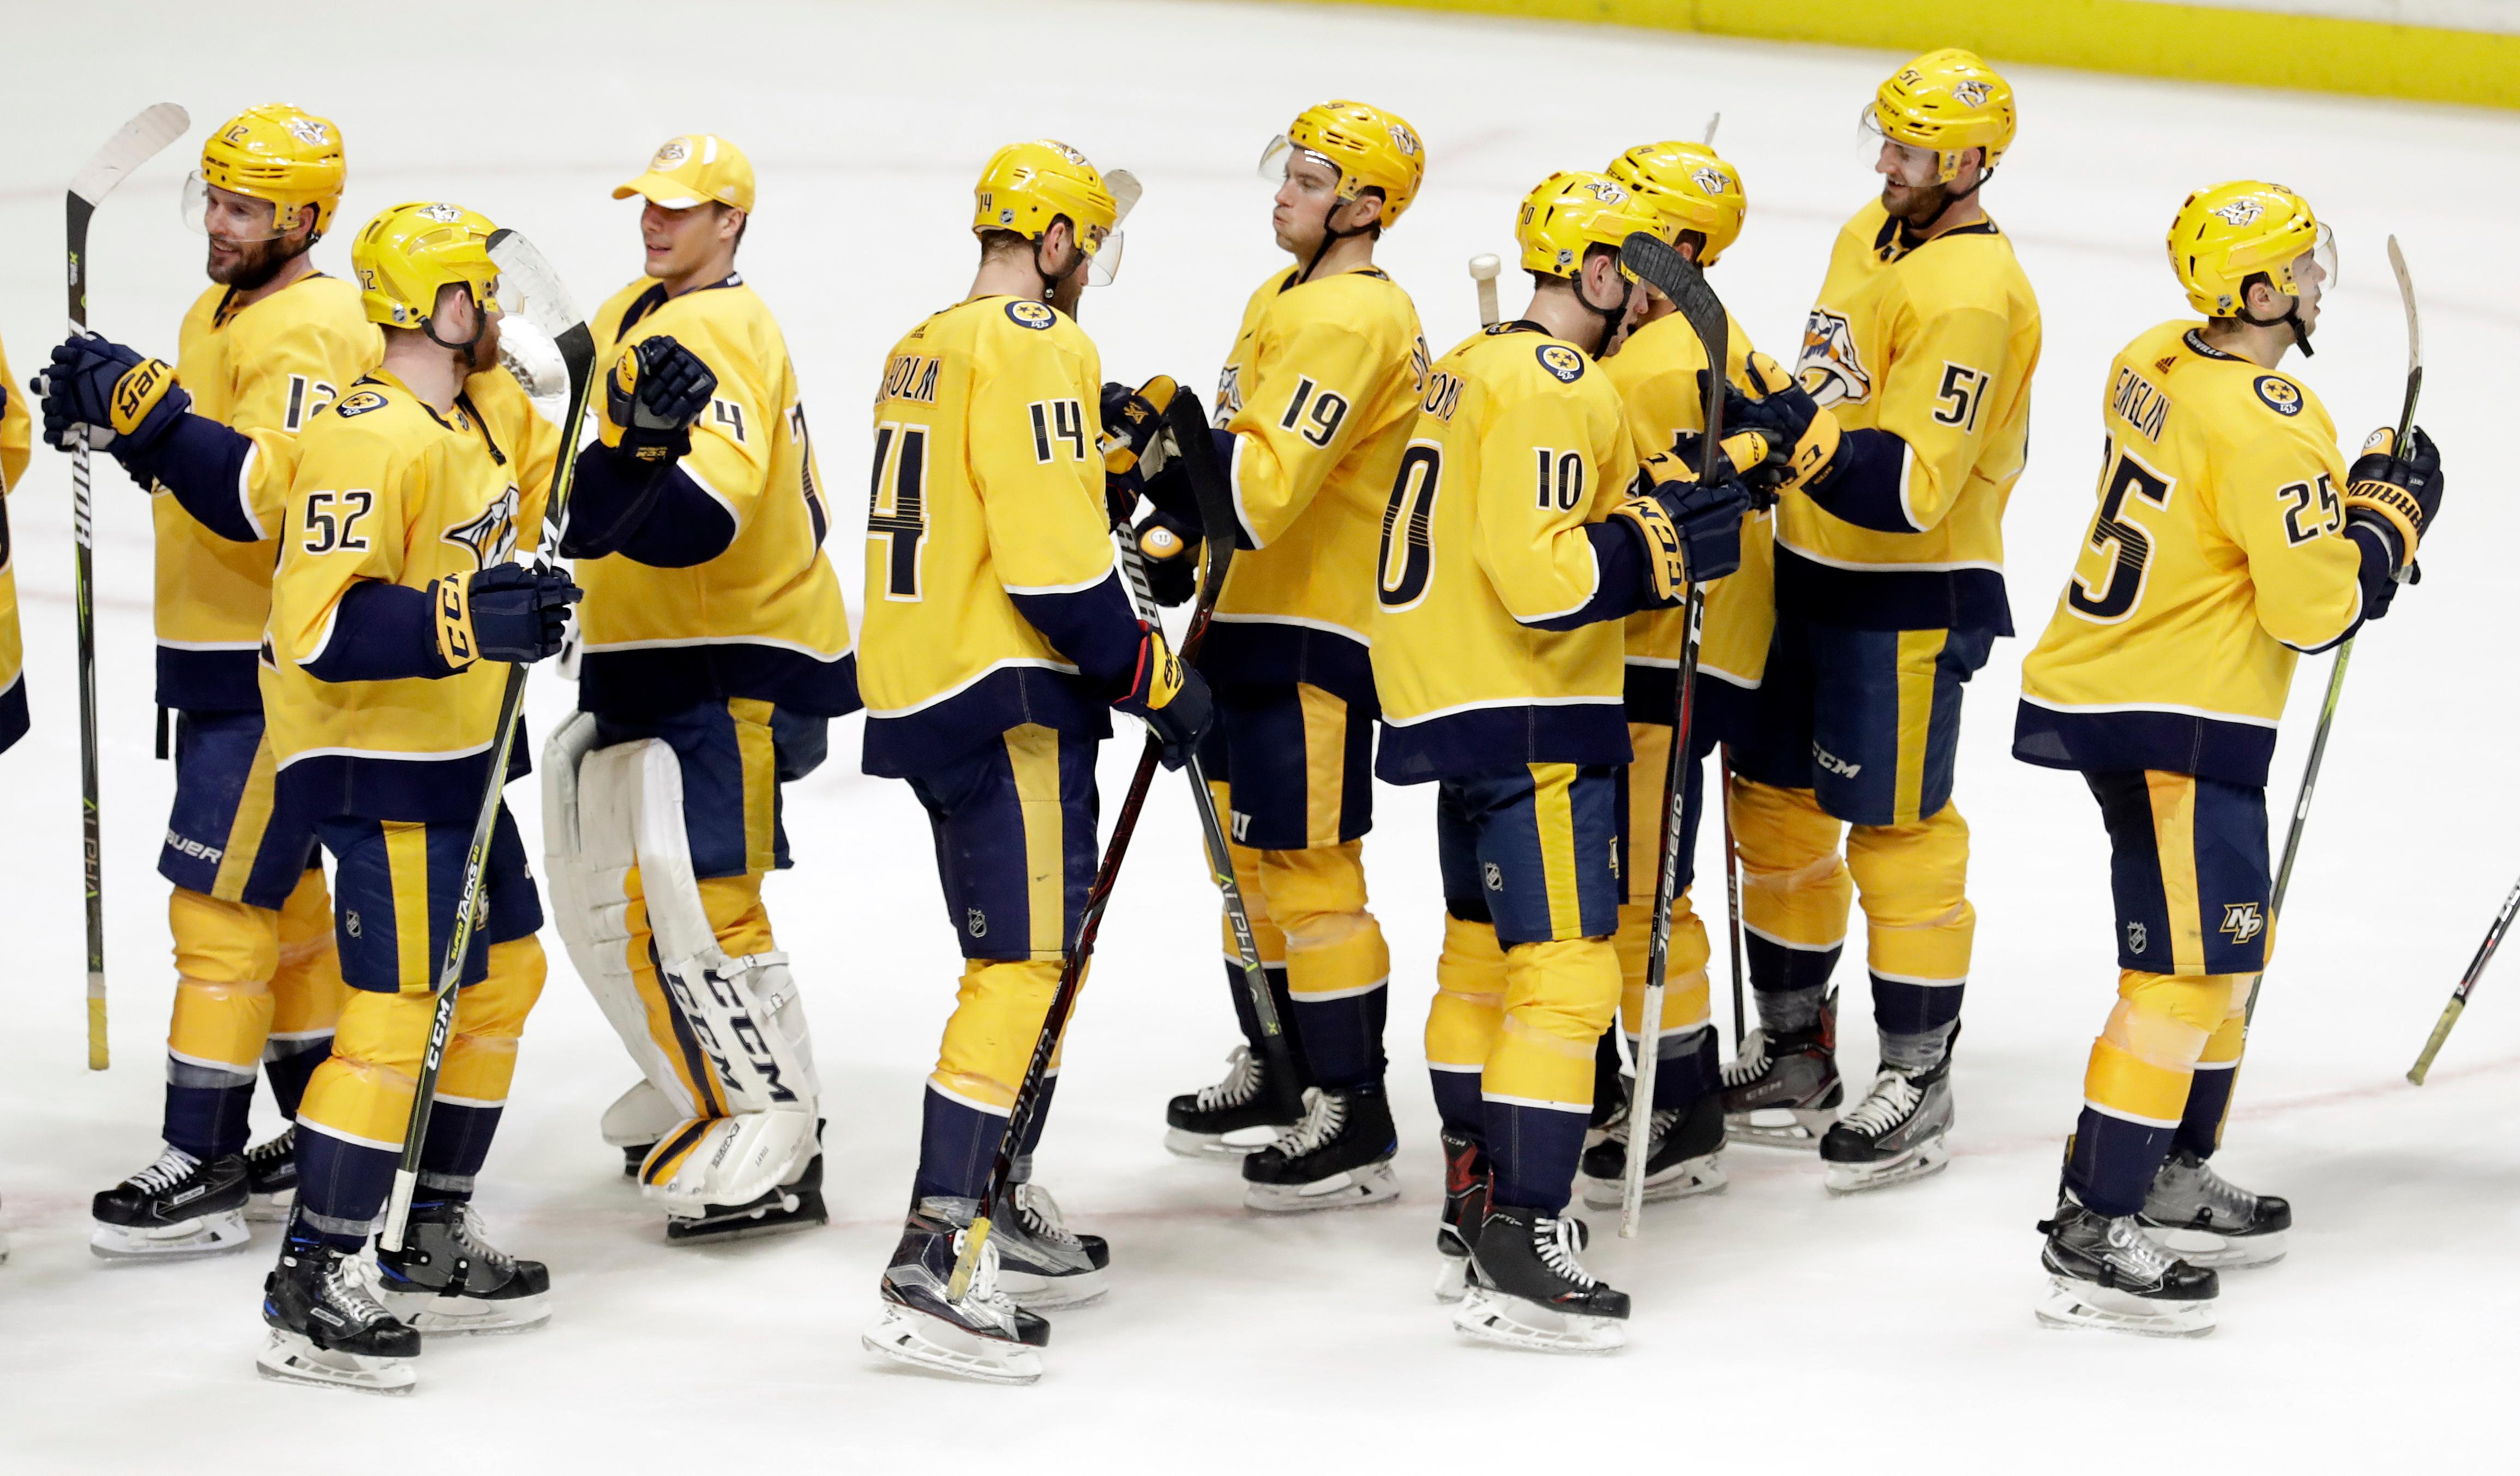 Nashville Predators players celebrate after beating the Dallas Stars 2-0 for their ninth straight NHL hockey game win Tuesday, March 6, 2018, in Nashville, Tenn. (AP Photo/Mark Humphrey)